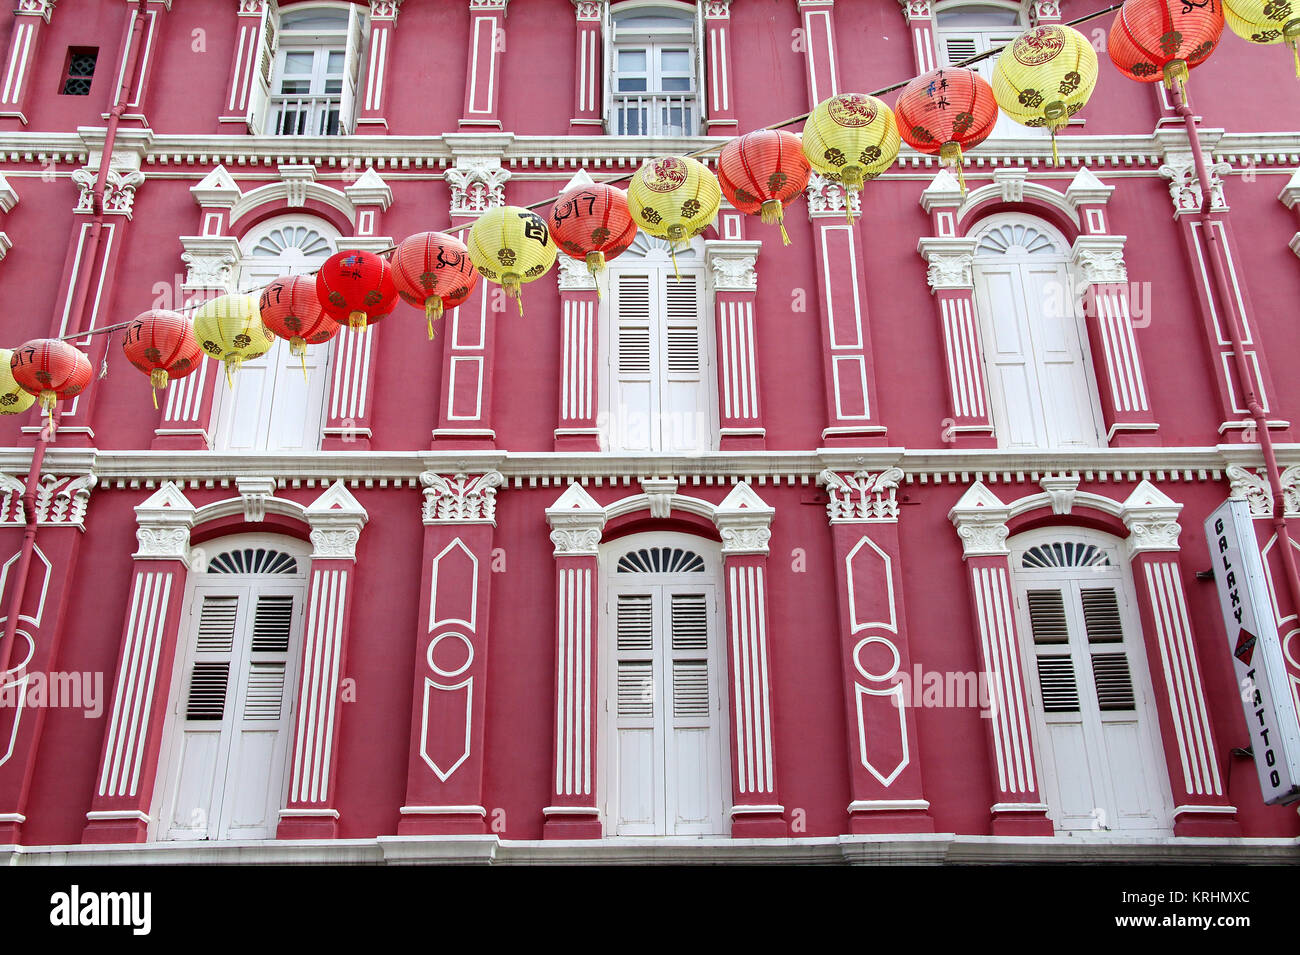 Shophouses at Chinatown in Singapore - Stock Image